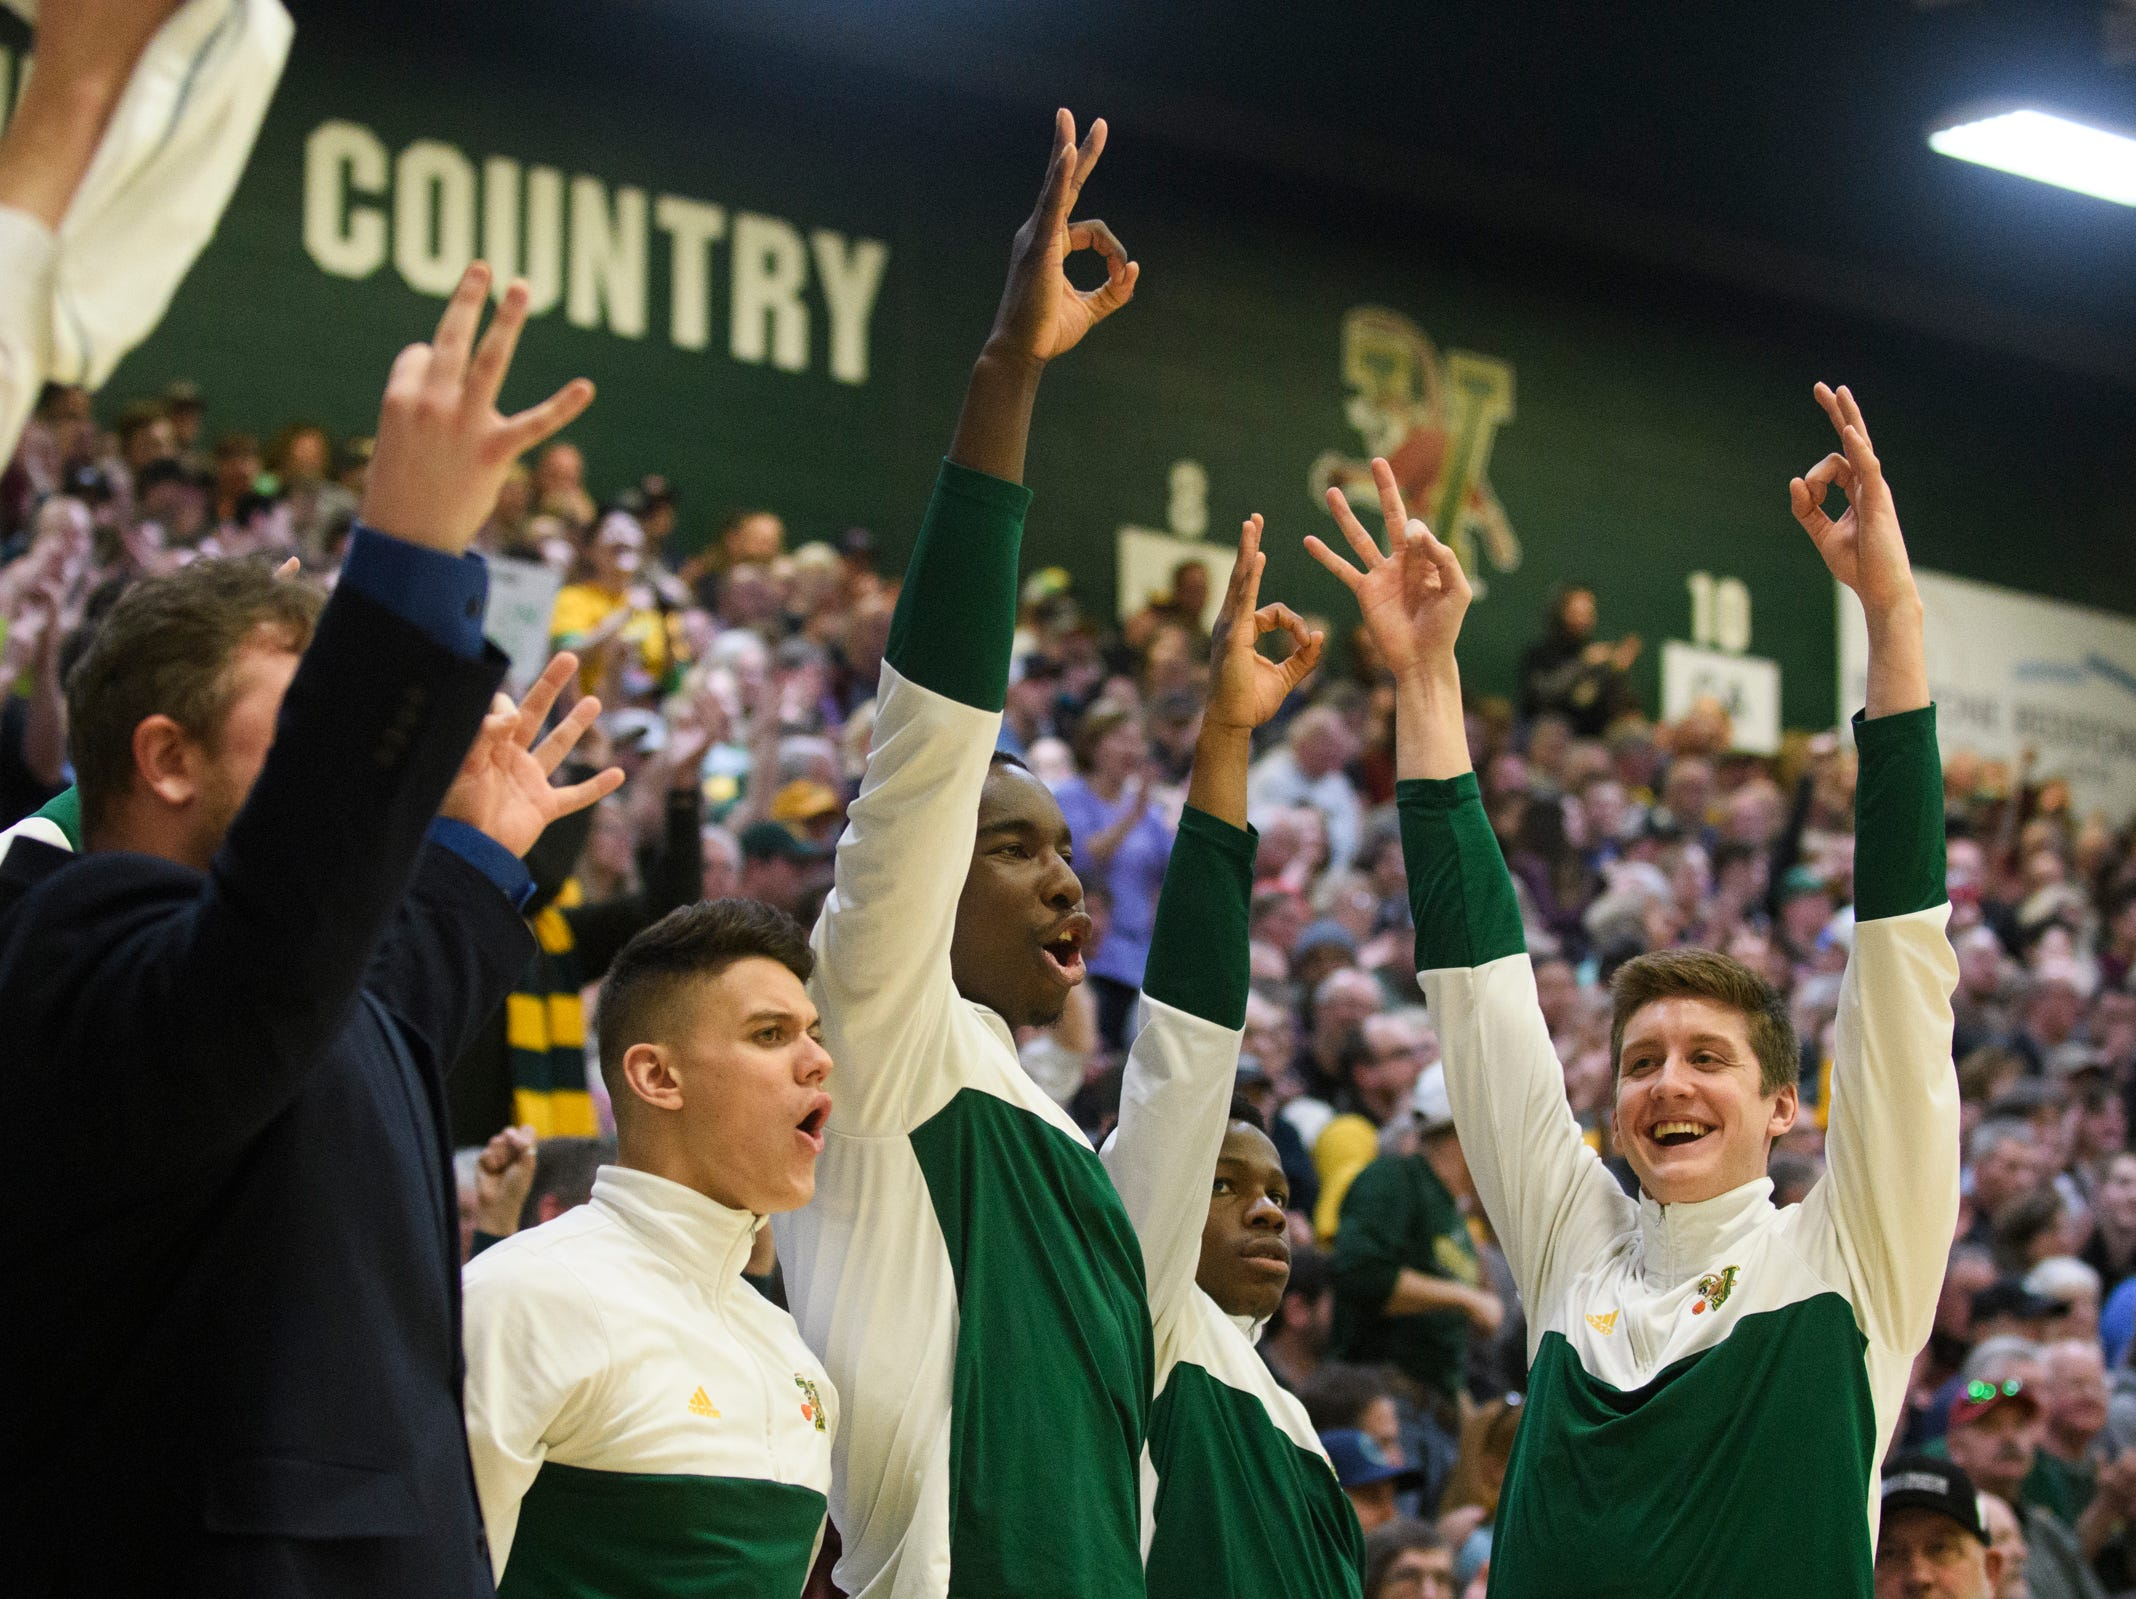 The Vermont bench reacts to a three pointer during the men's basketball game between the Albany Great Danes and the Vermont Catamounts at Patrick Gym on Saturday February 9, 2019 in Burlington, Vermont.